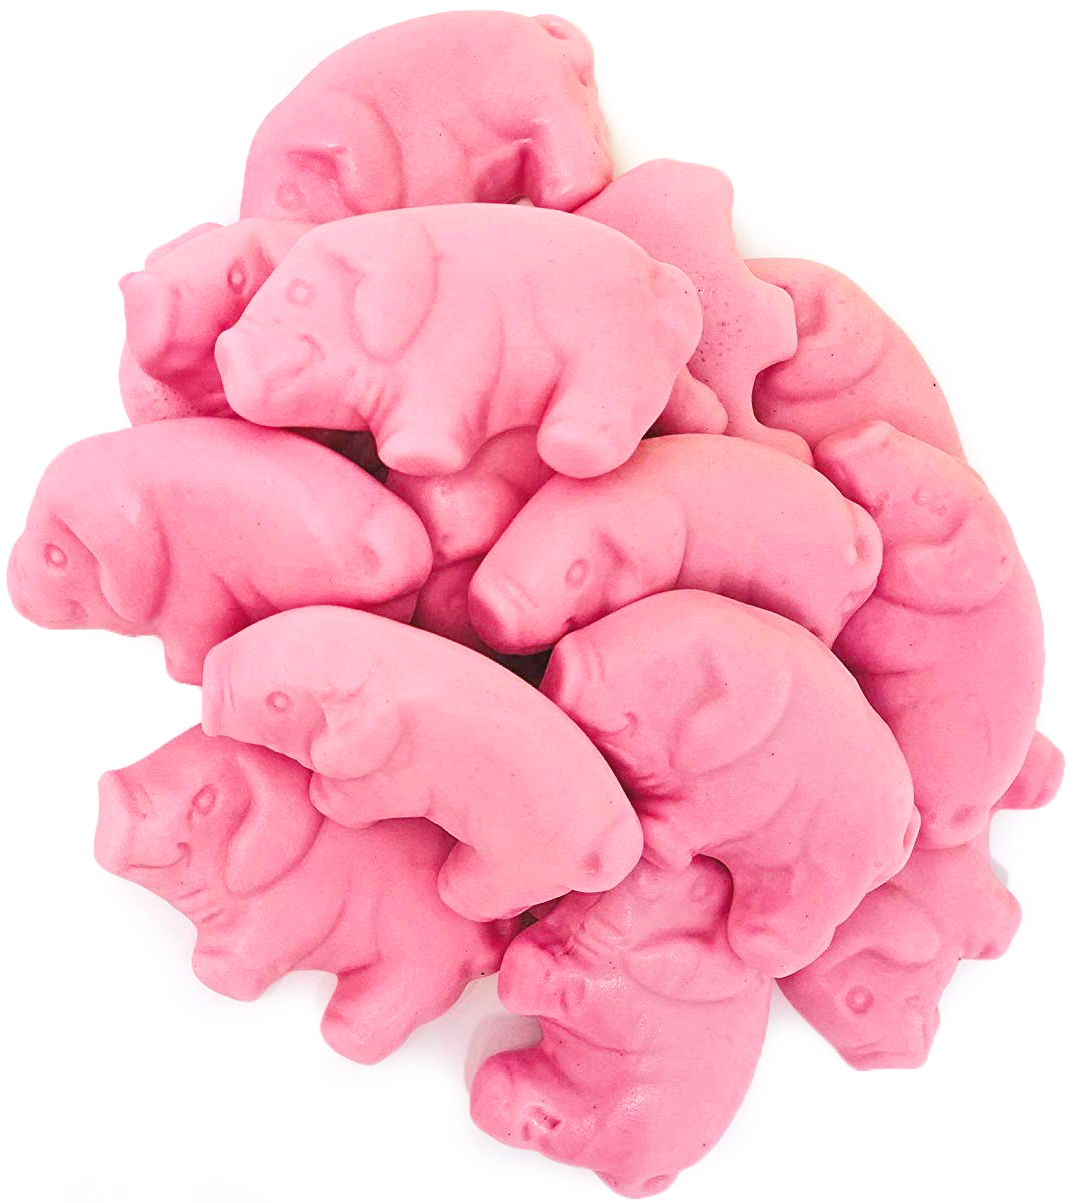 Gustaf's Pink Gummy Pigs raspberry flavored candy bulk 3 pounds